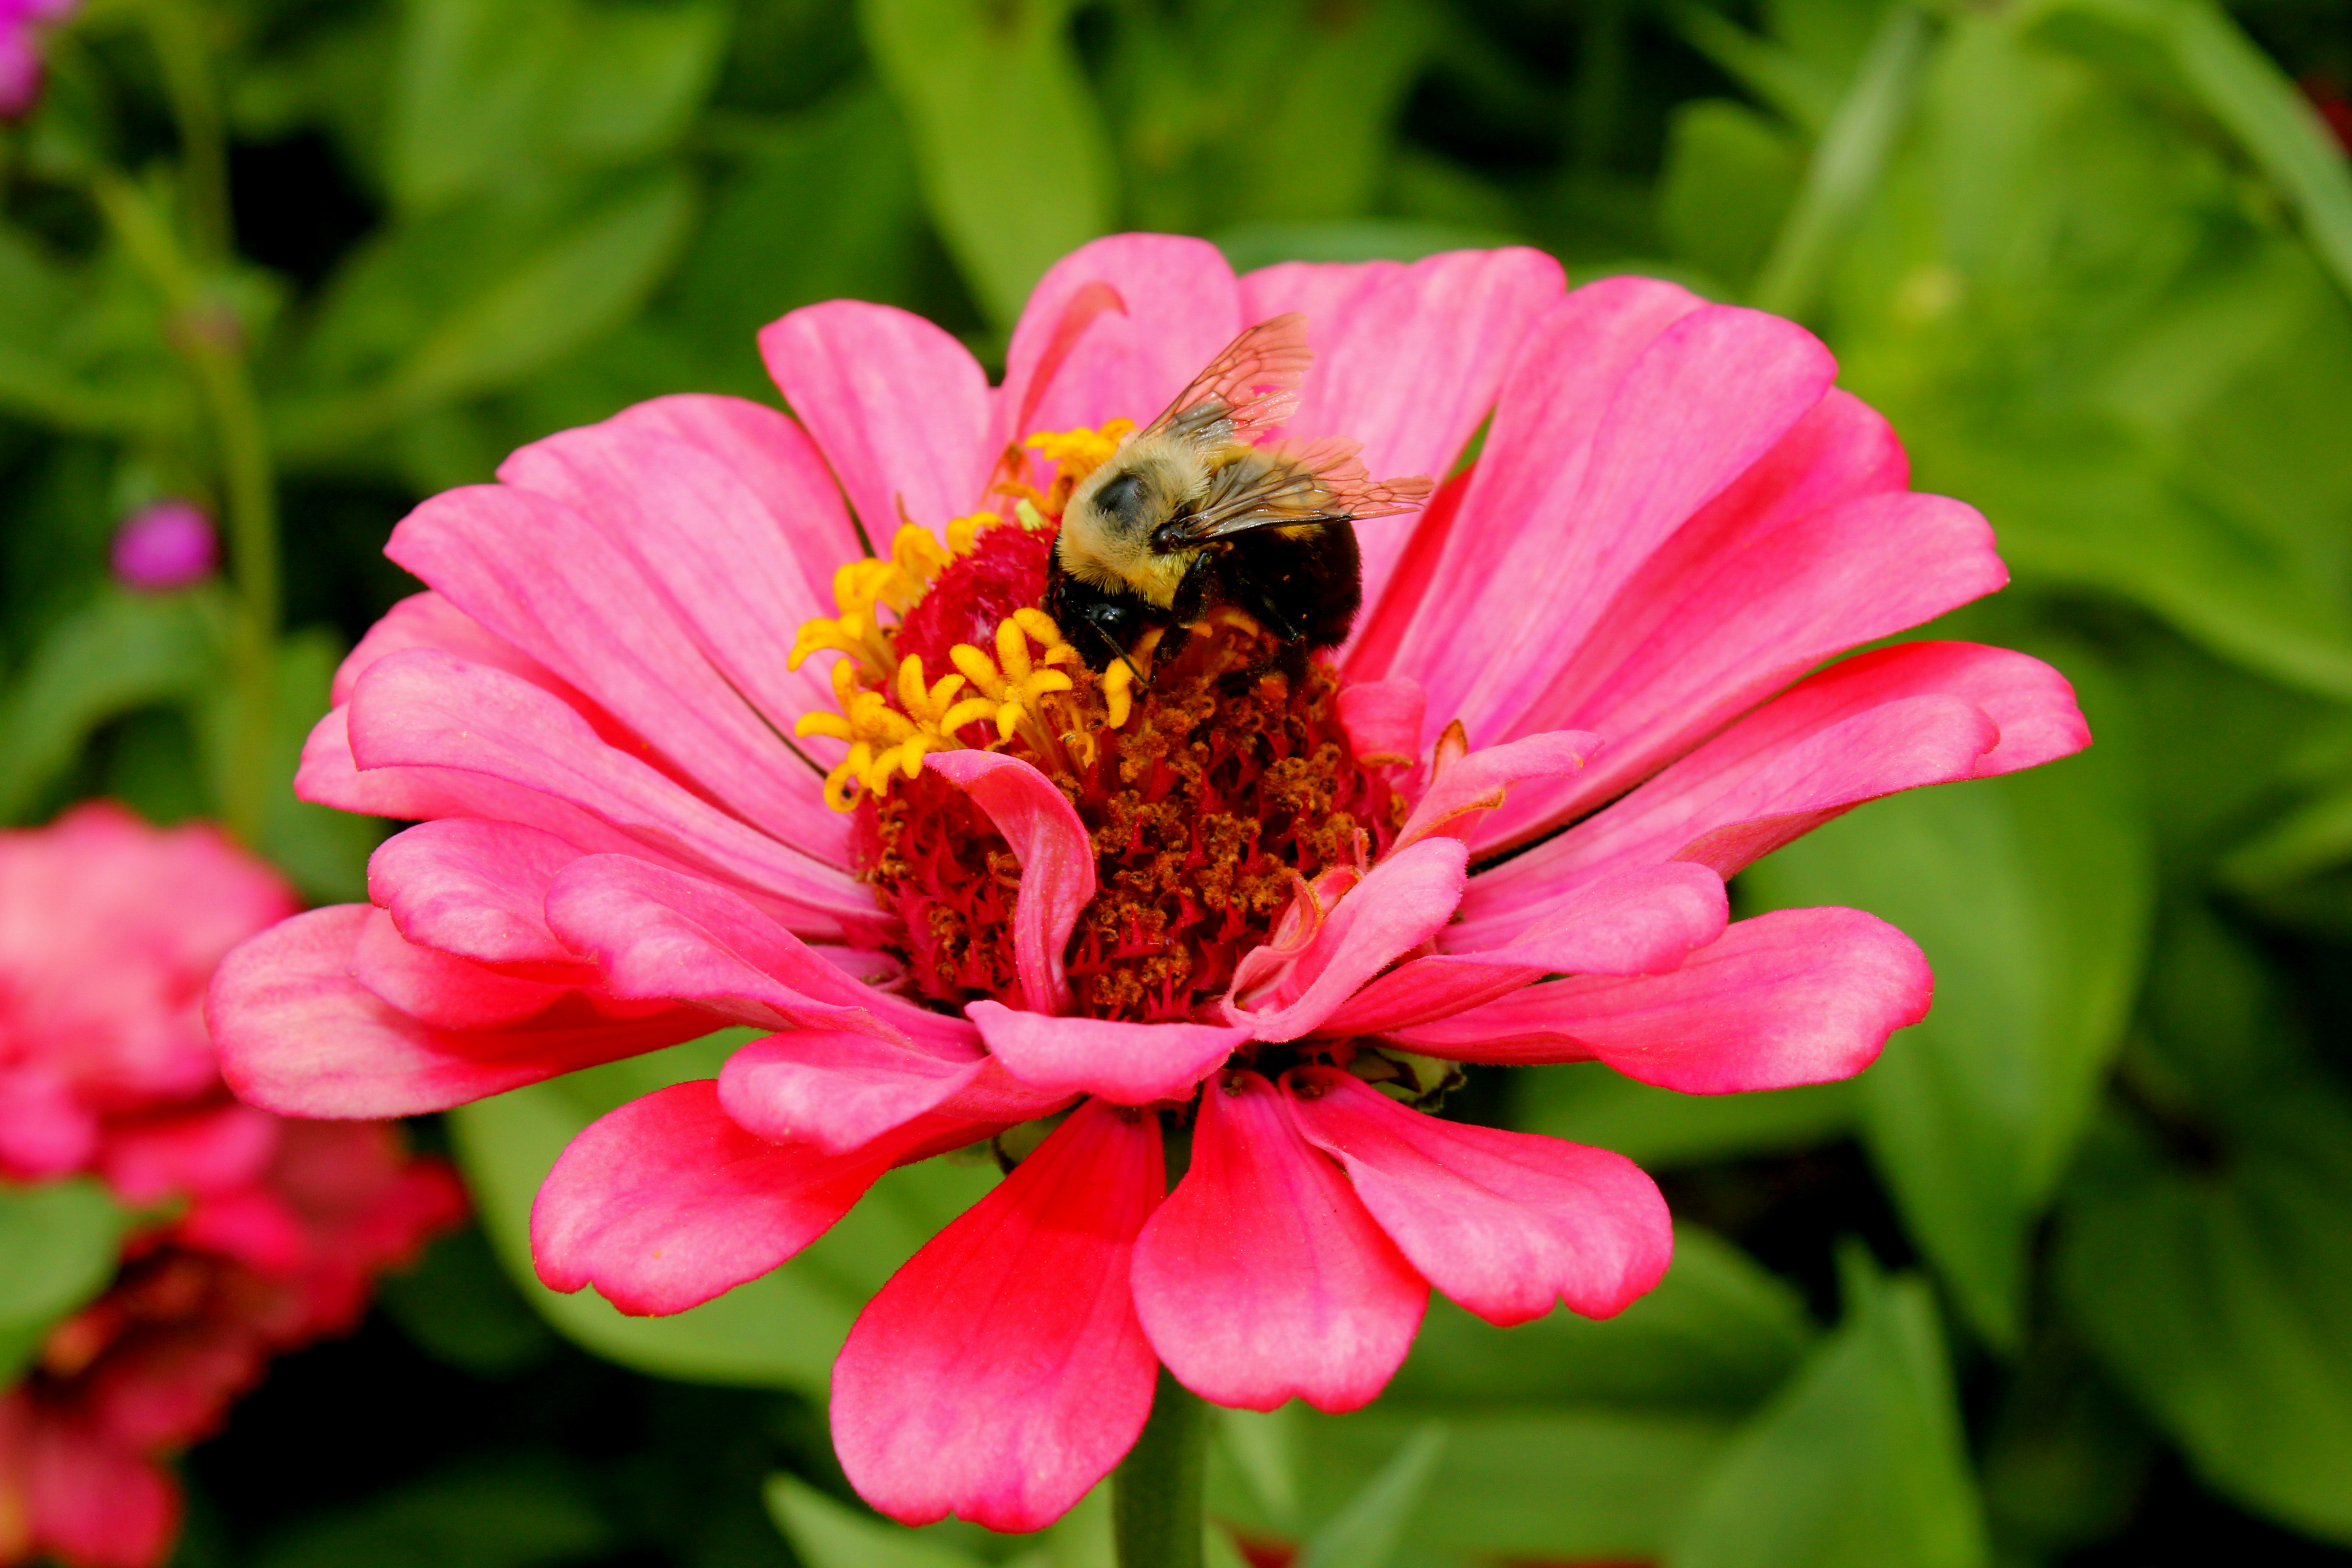 Shape and Color Matters in Pollination! – The Bees Waggle